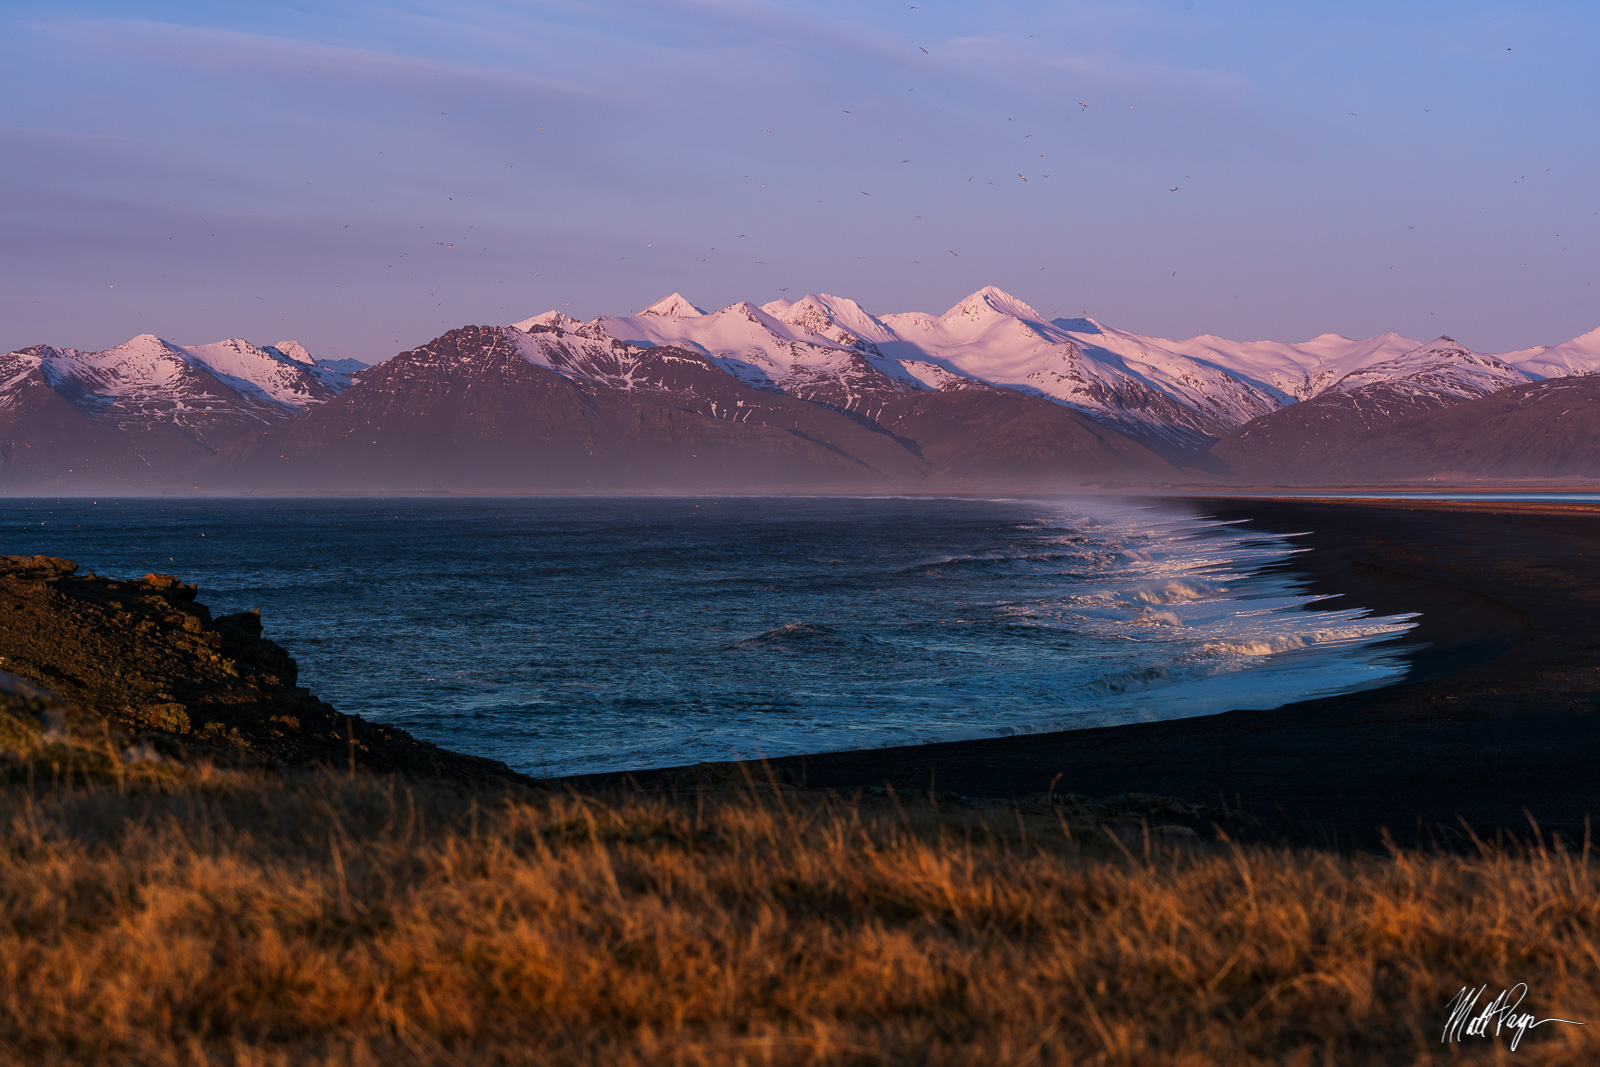 Birds, Coast, Hvalnes Lighthouse, Iceland, Landscape, Mountains, Ocean, Sunrise, Waves, Landscape Photography, photo